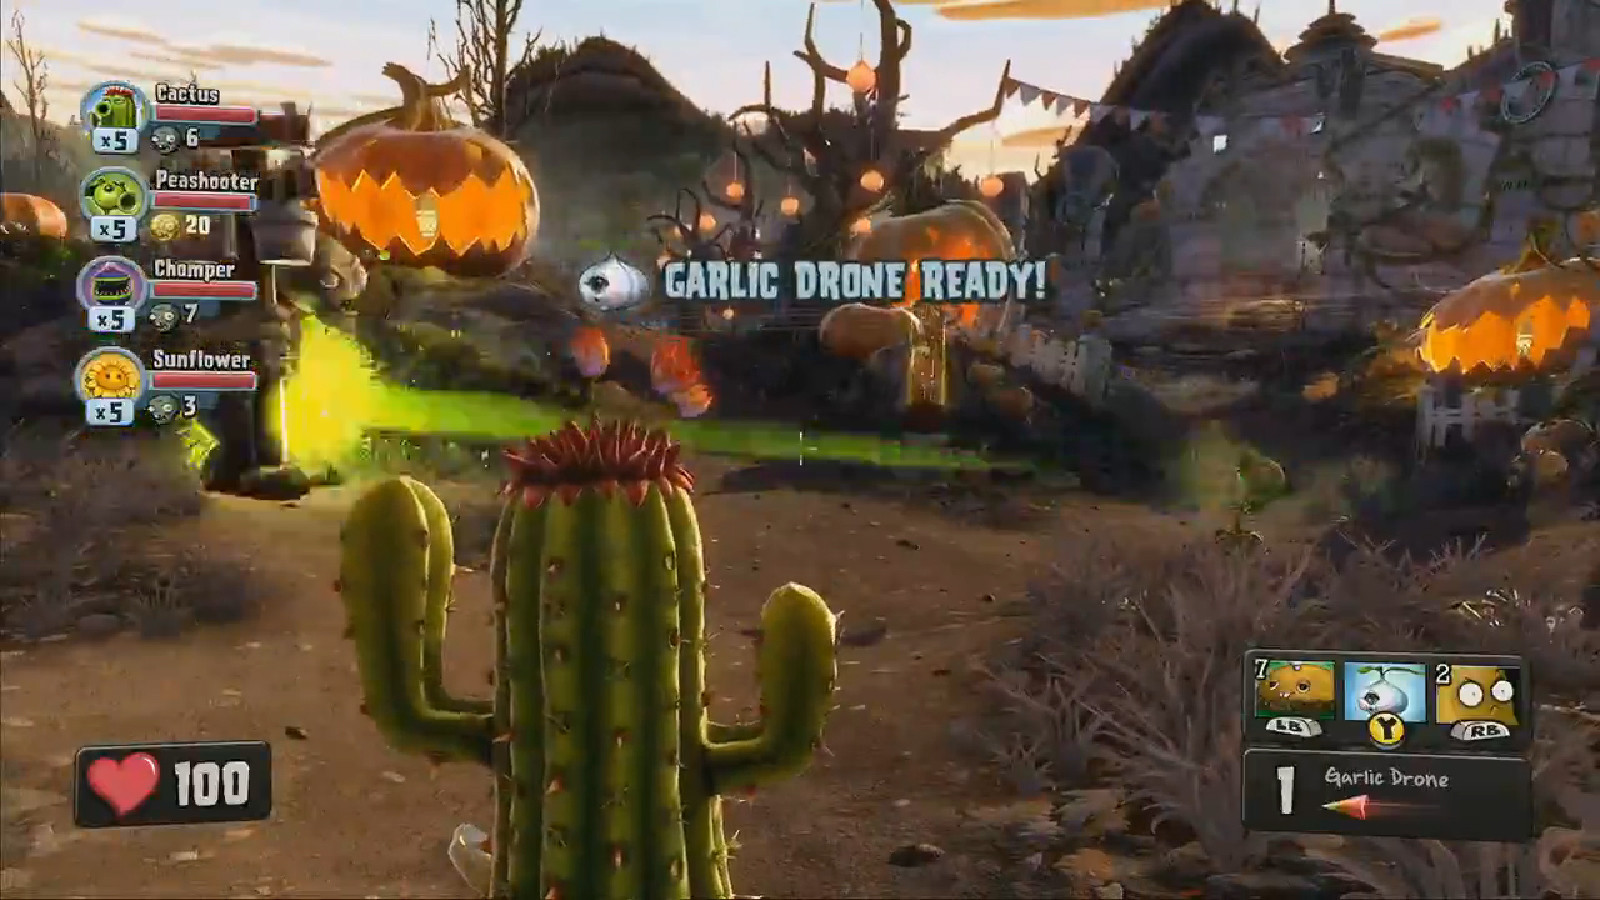 Plants vs zombies garden warfare has local co op on xbox - Plants vs zombies garden warfare xbox one ...